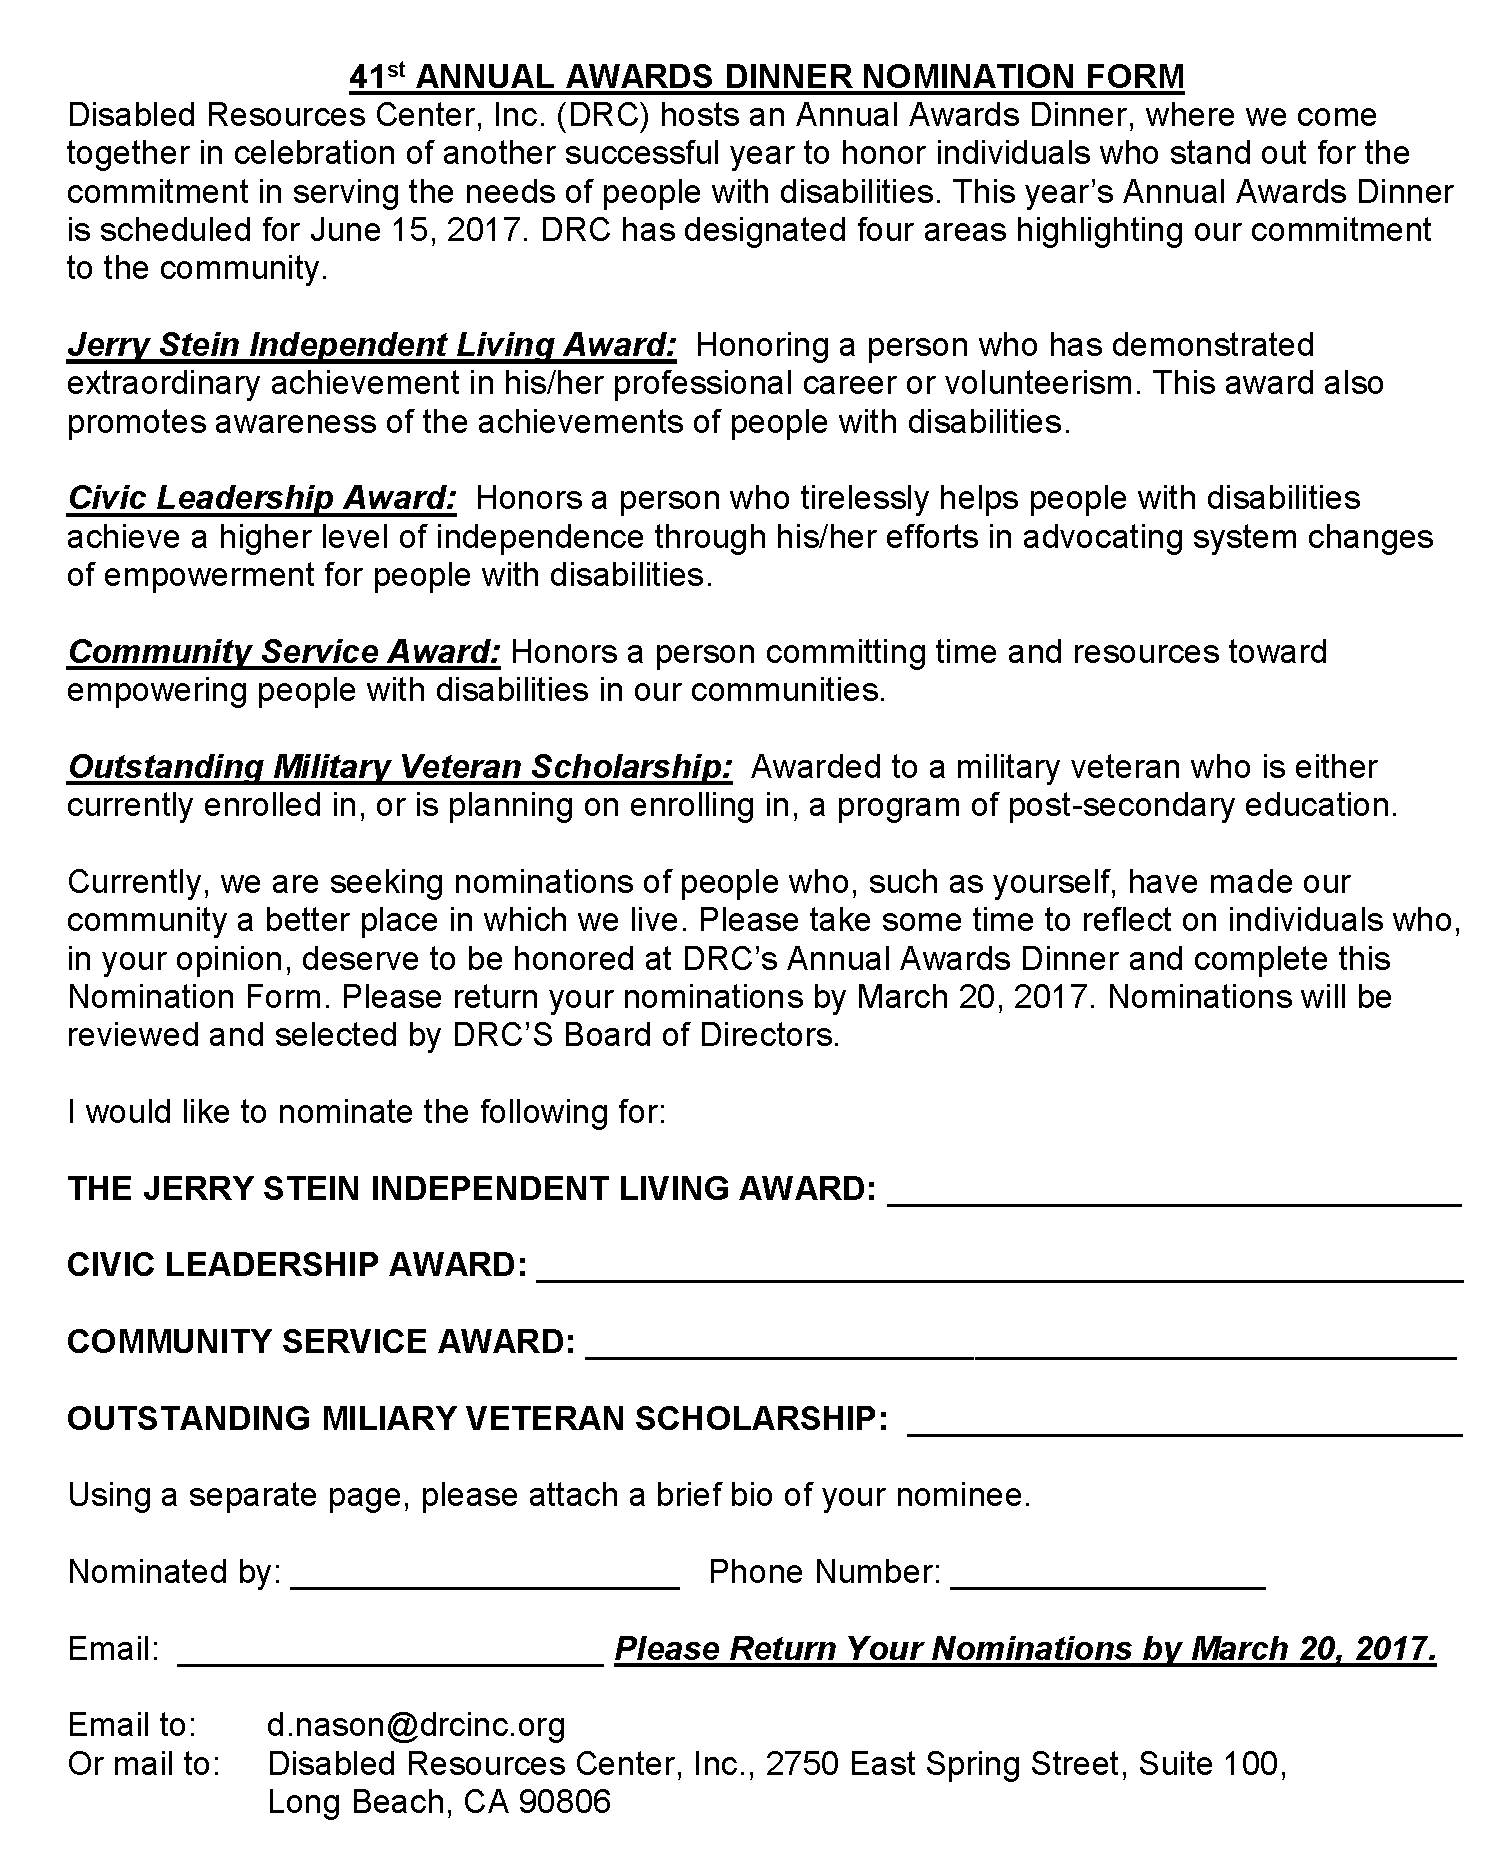 Annual Awards Dinner Nomination Form 2017